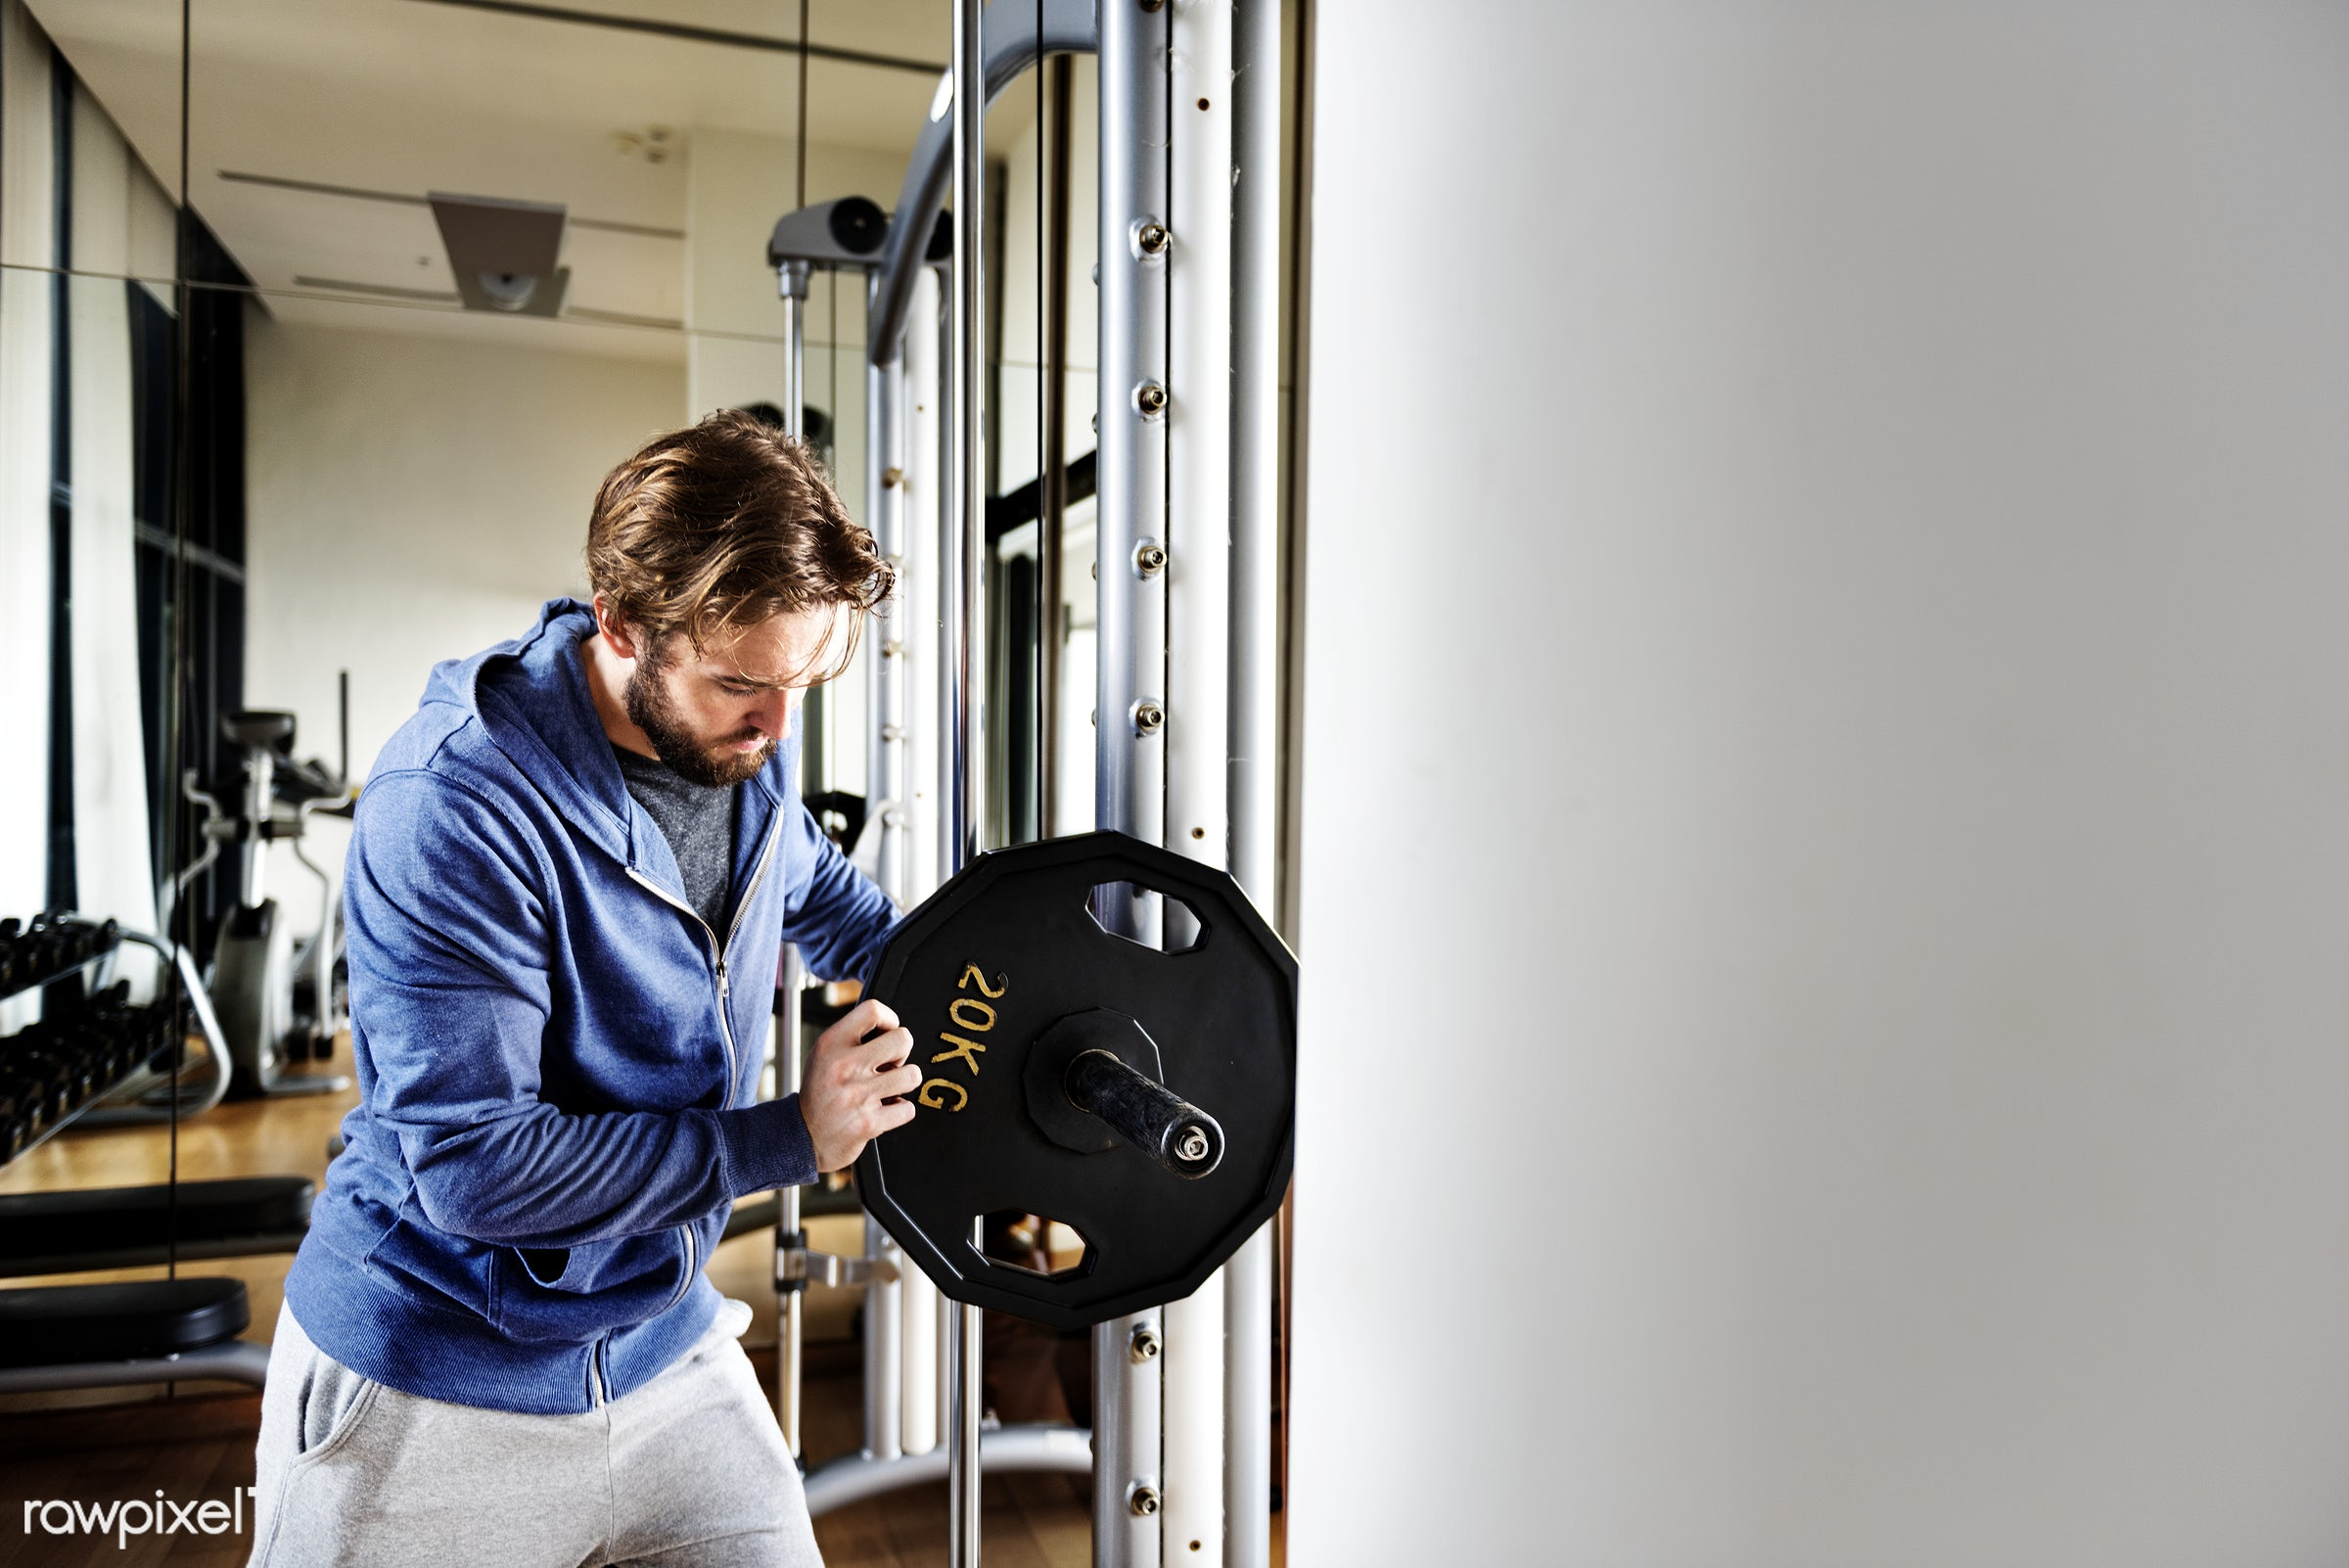 A man lifting weights in the gym - gym, active, adult, athlete, athletic, attractive, barbell, body, bodybuilding, building...